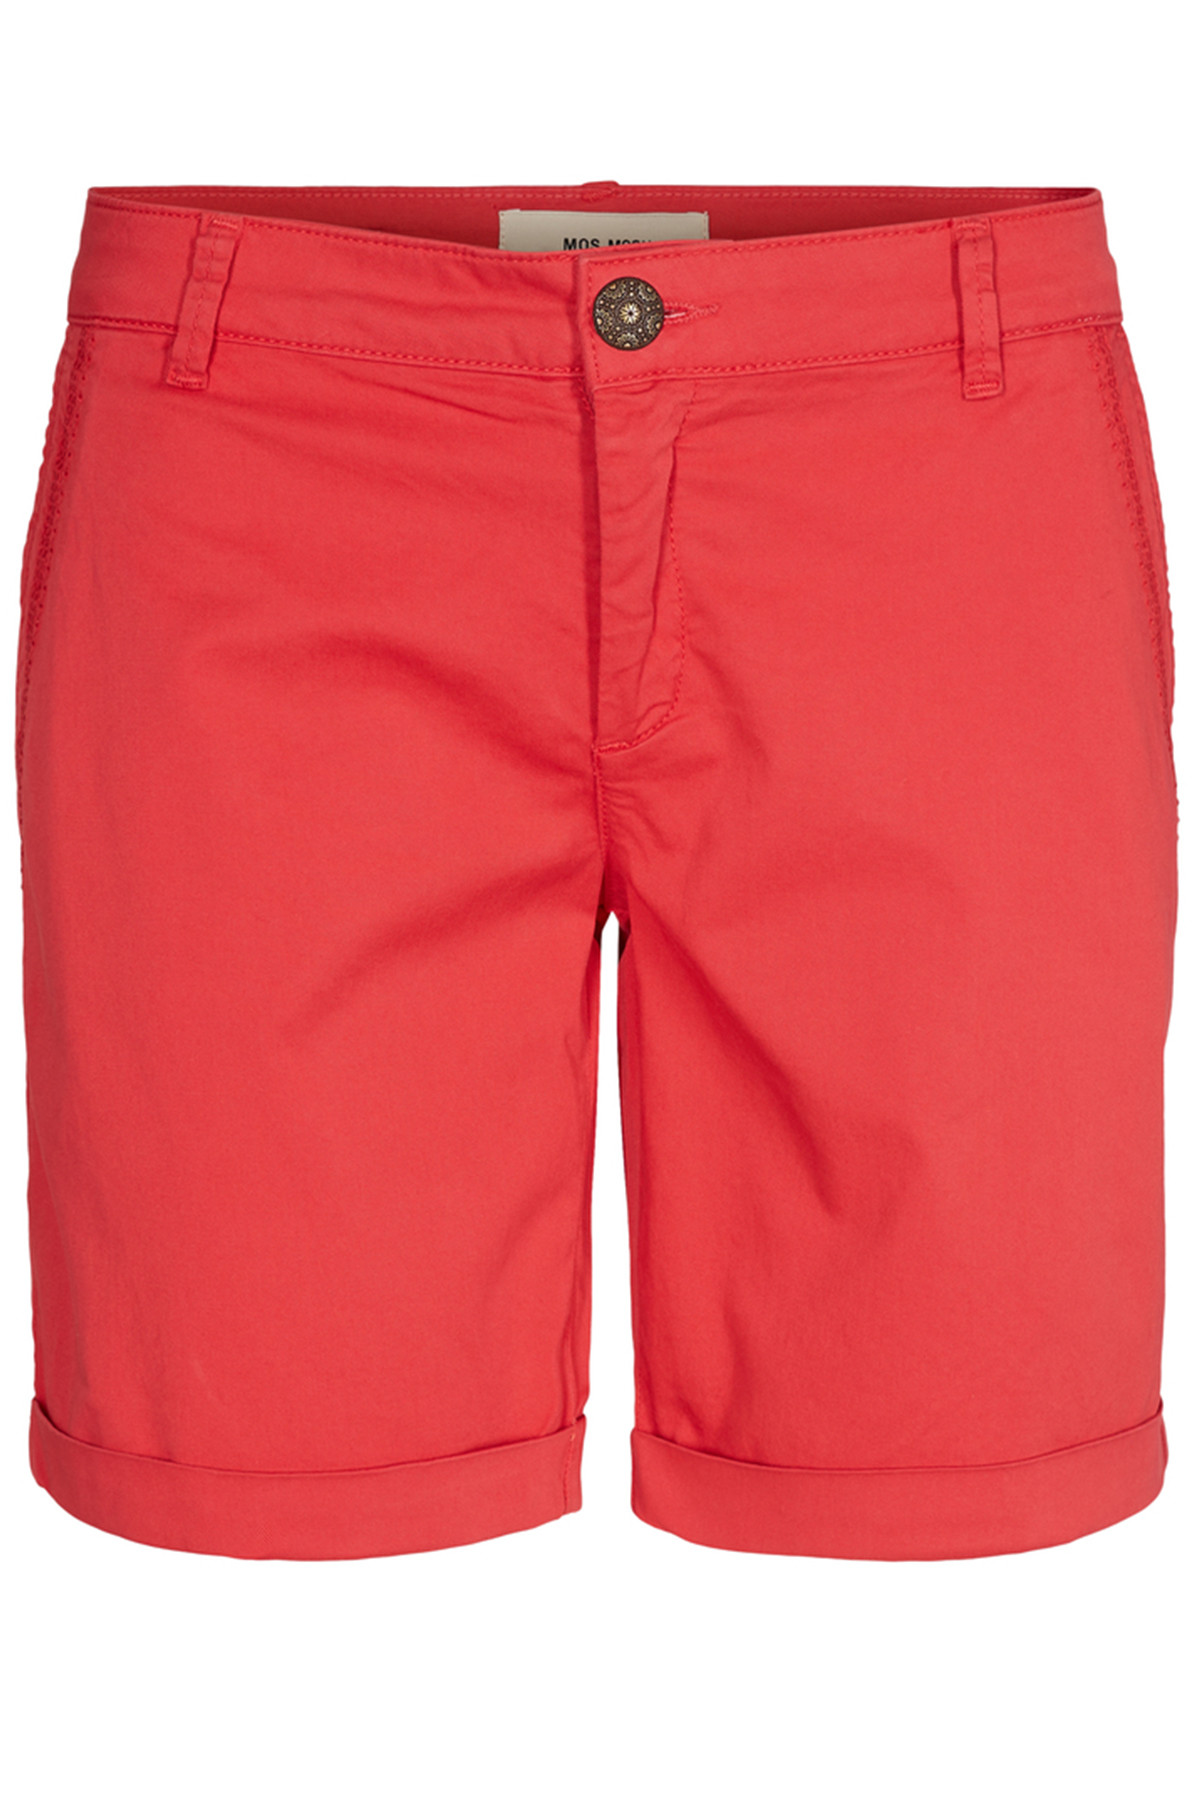 Image of   MOS MOSH PERRY CHINO SHORTS 126510 R (Rio Red, 26)